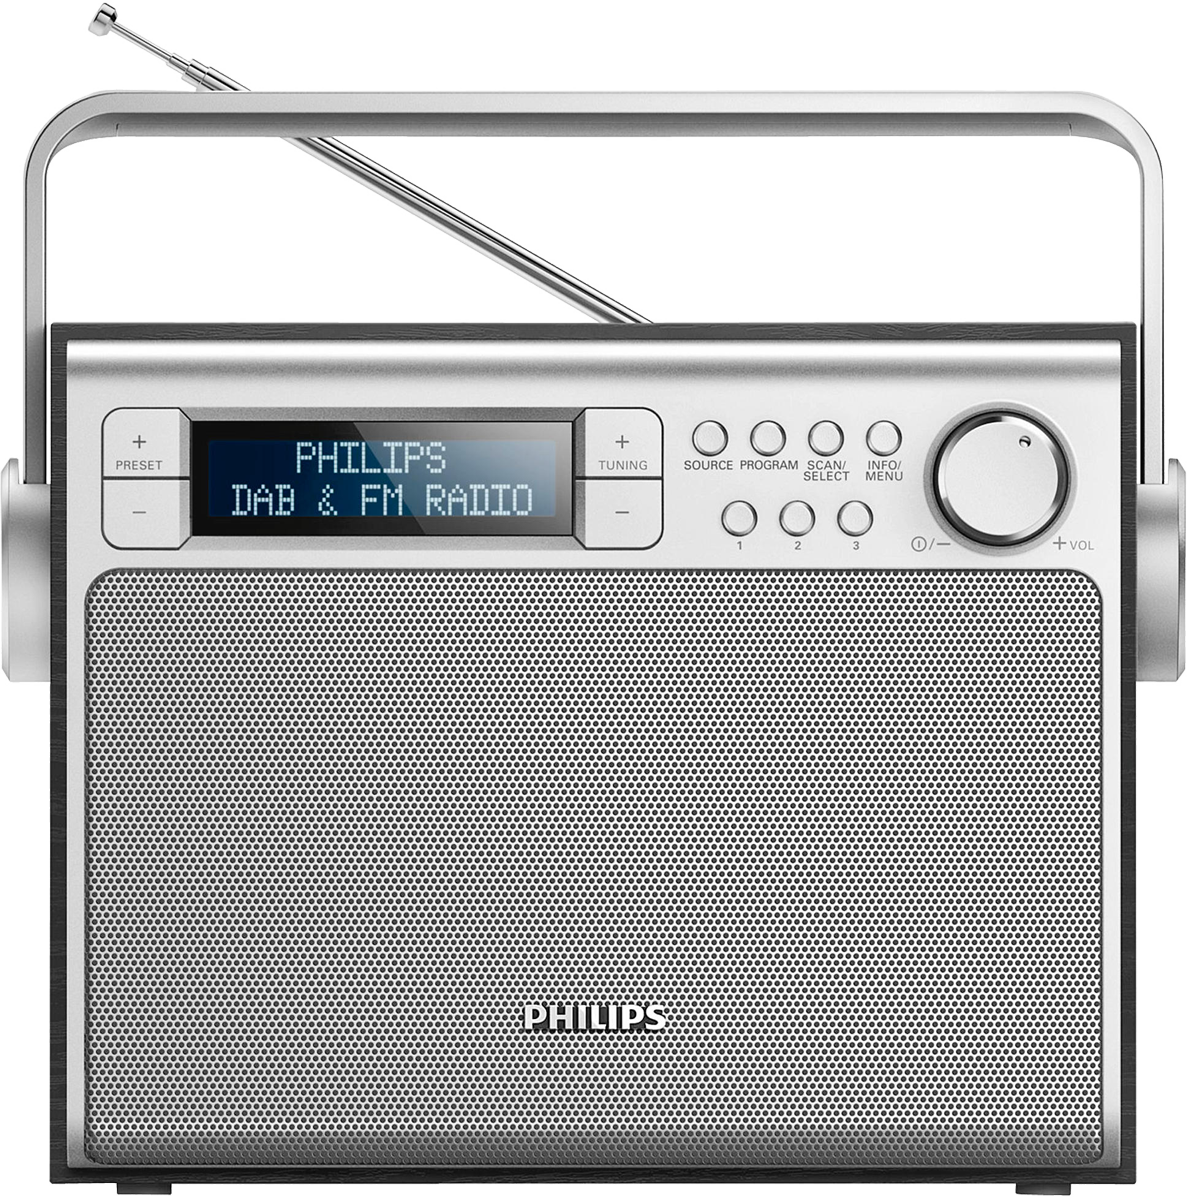 philips ae5020b 12 dab radio acheter bas prix. Black Bedroom Furniture Sets. Home Design Ideas